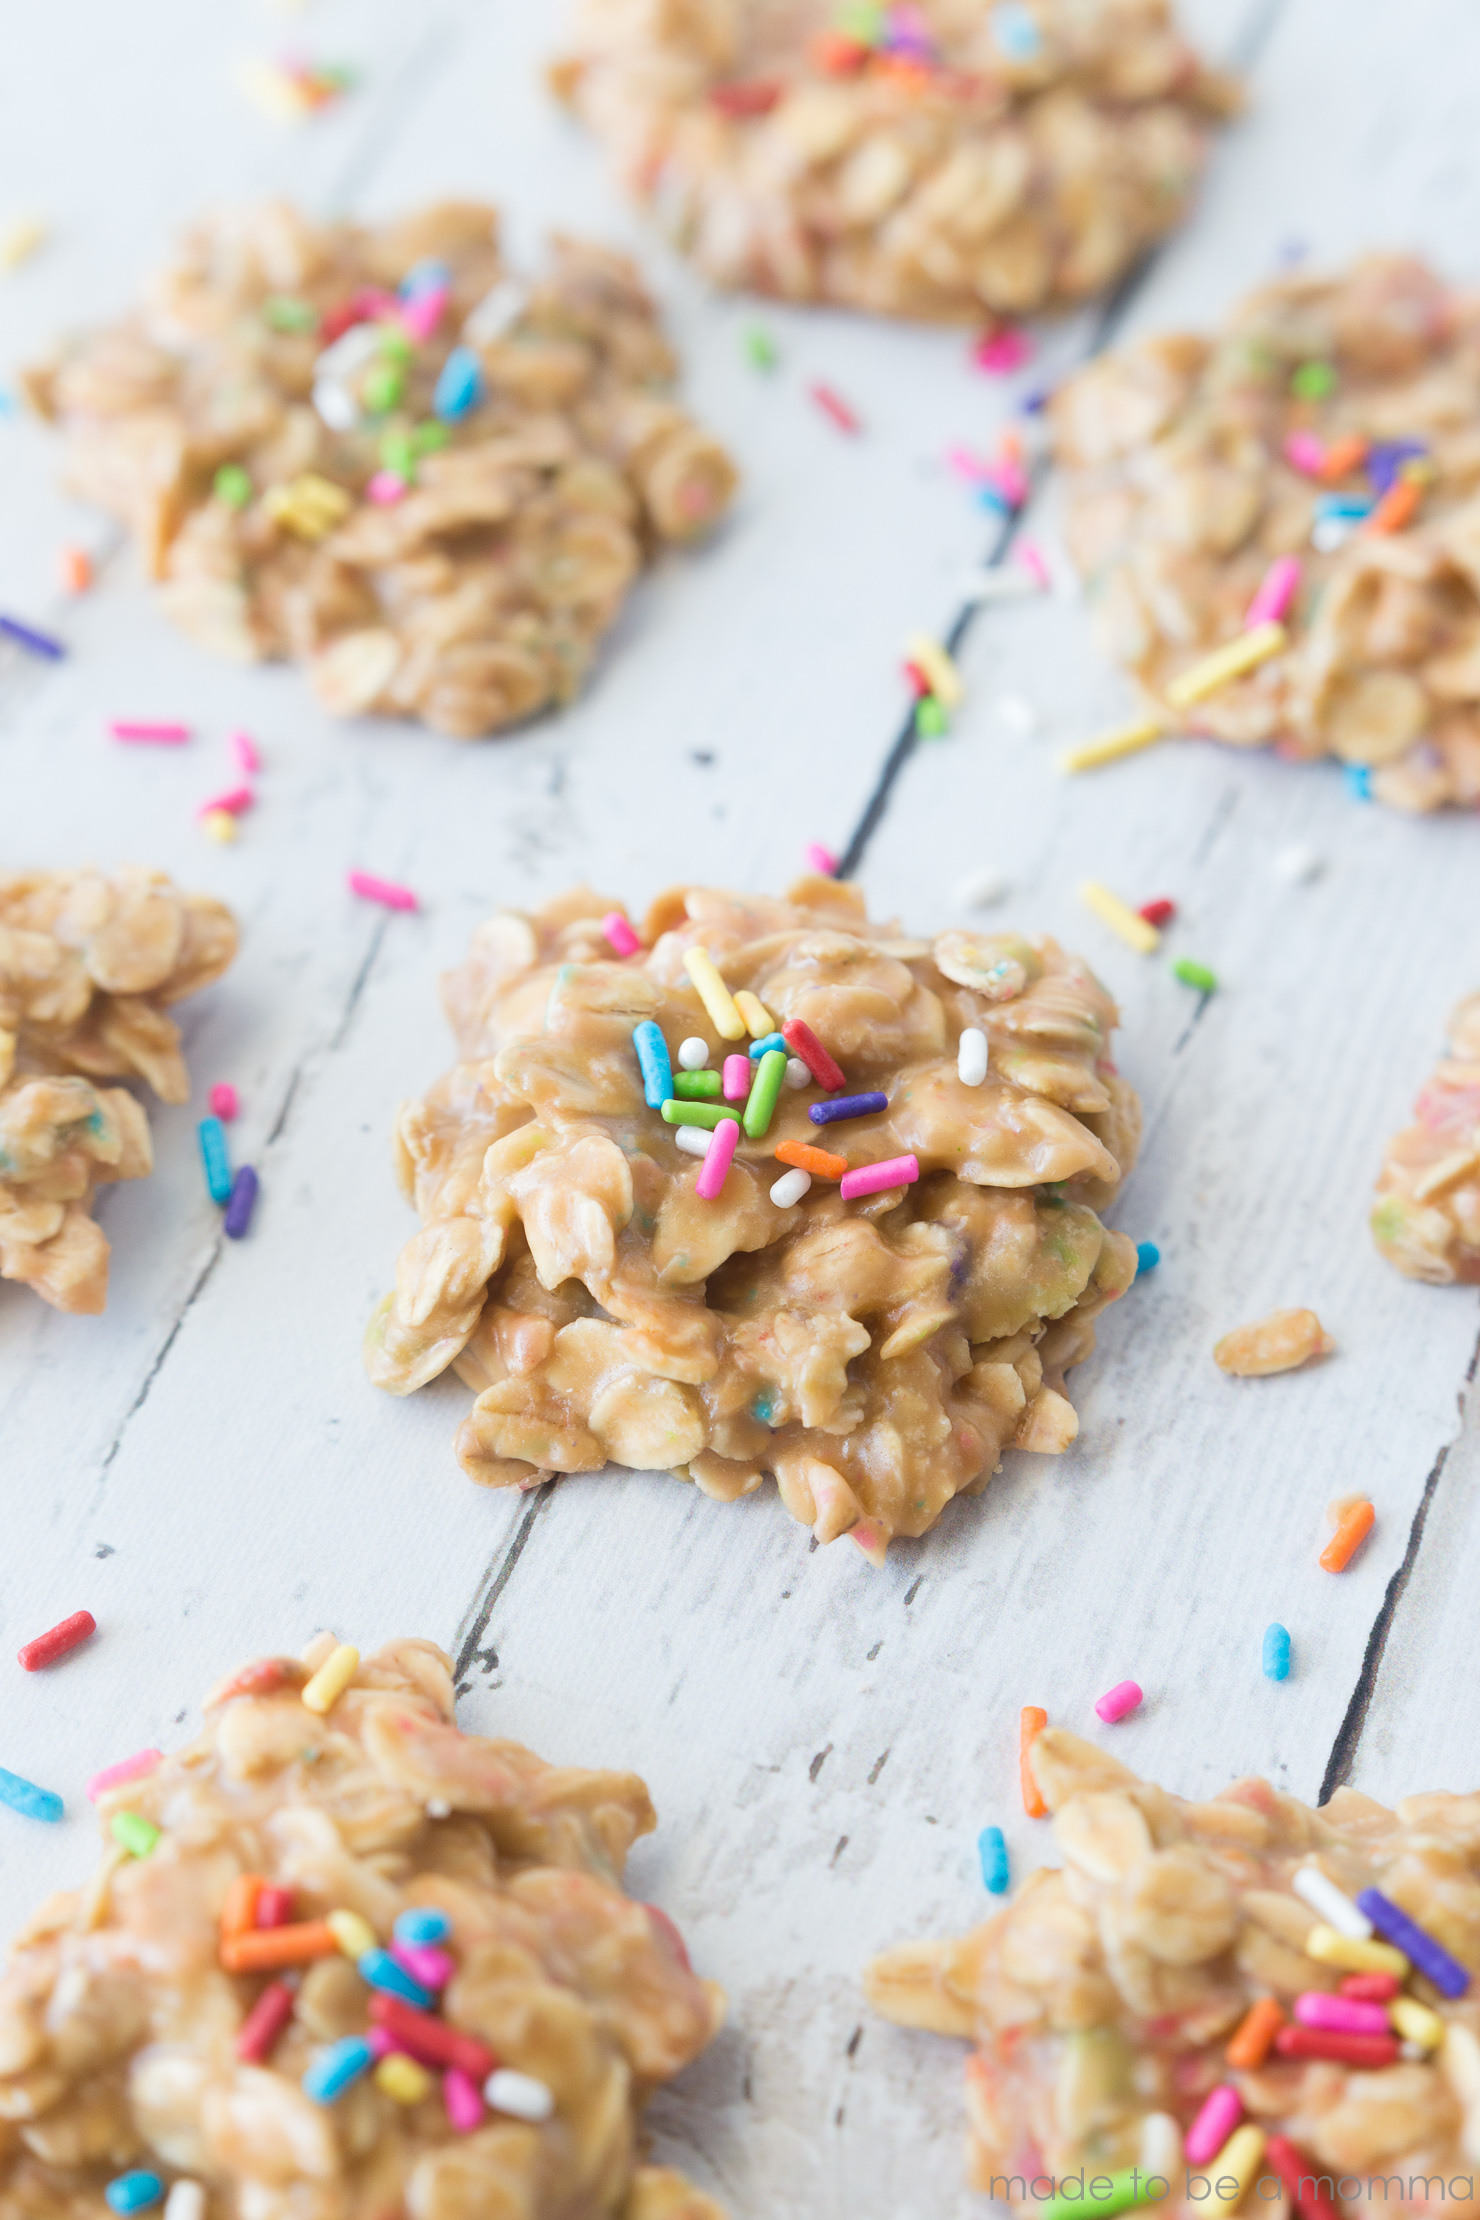 No-Bake Butterscotch Sprinkle Cookies - Made To Be A Momma